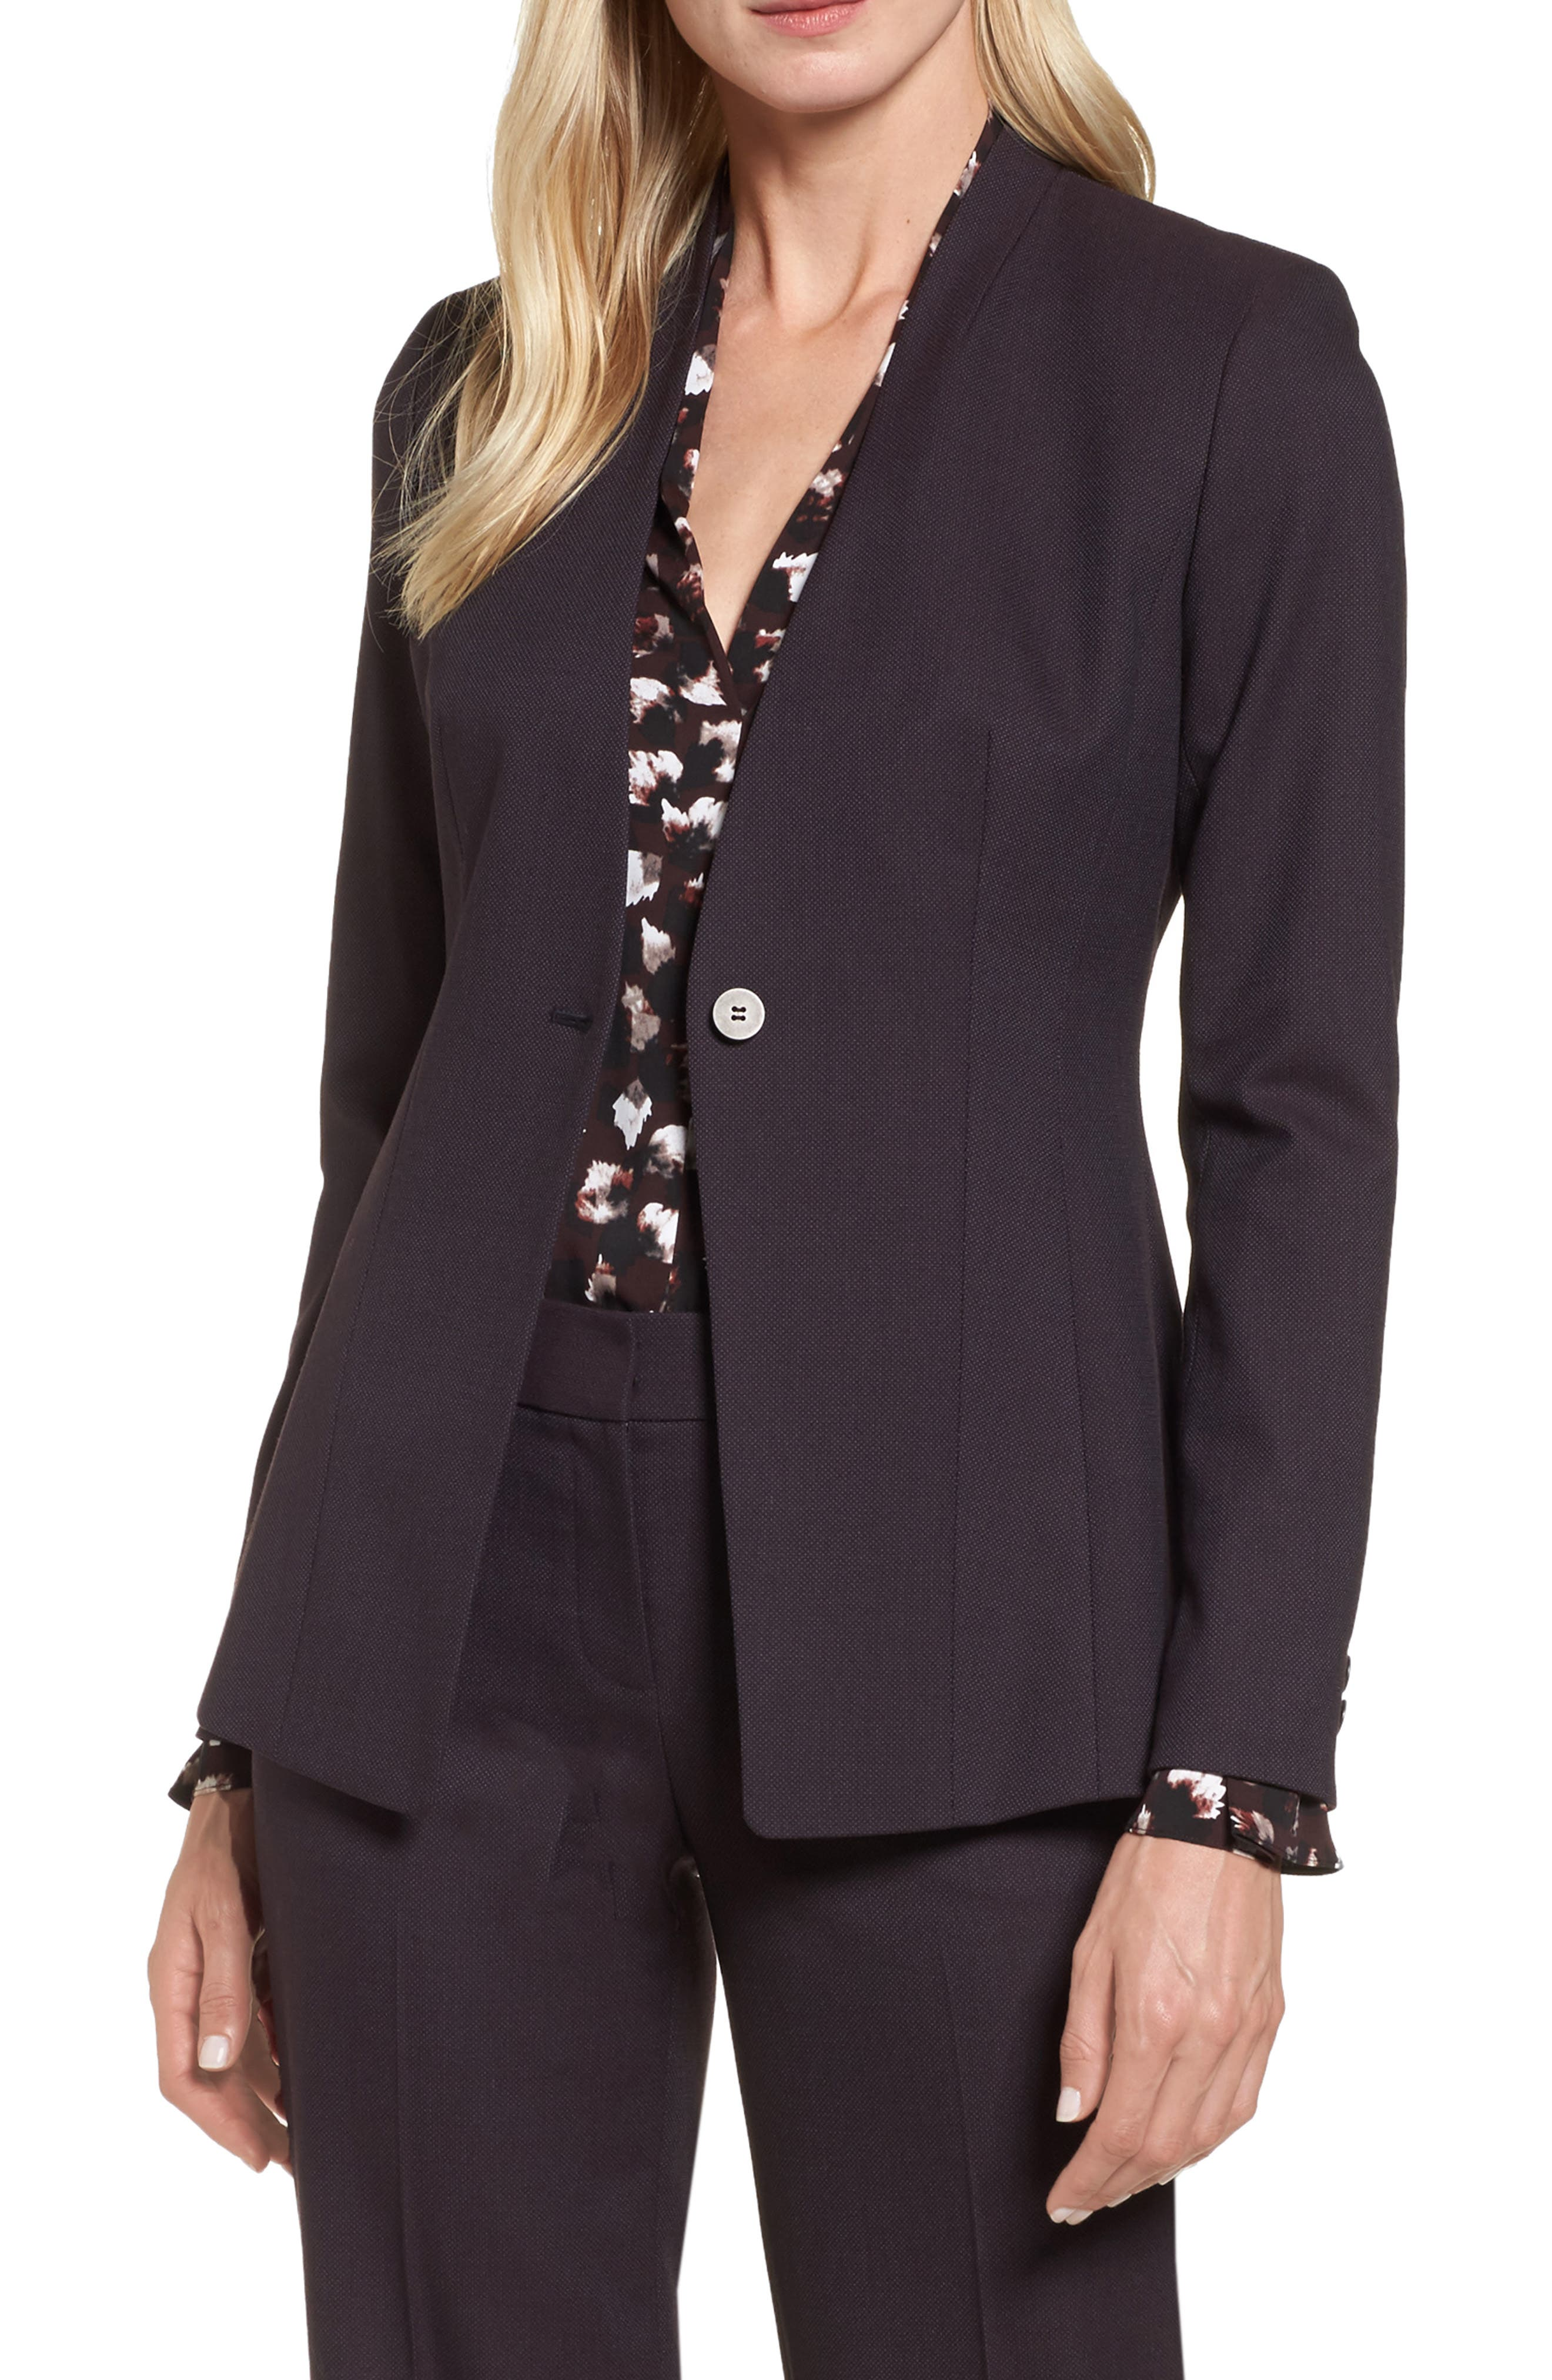 Emerson Rose One-Button Suit Jacket